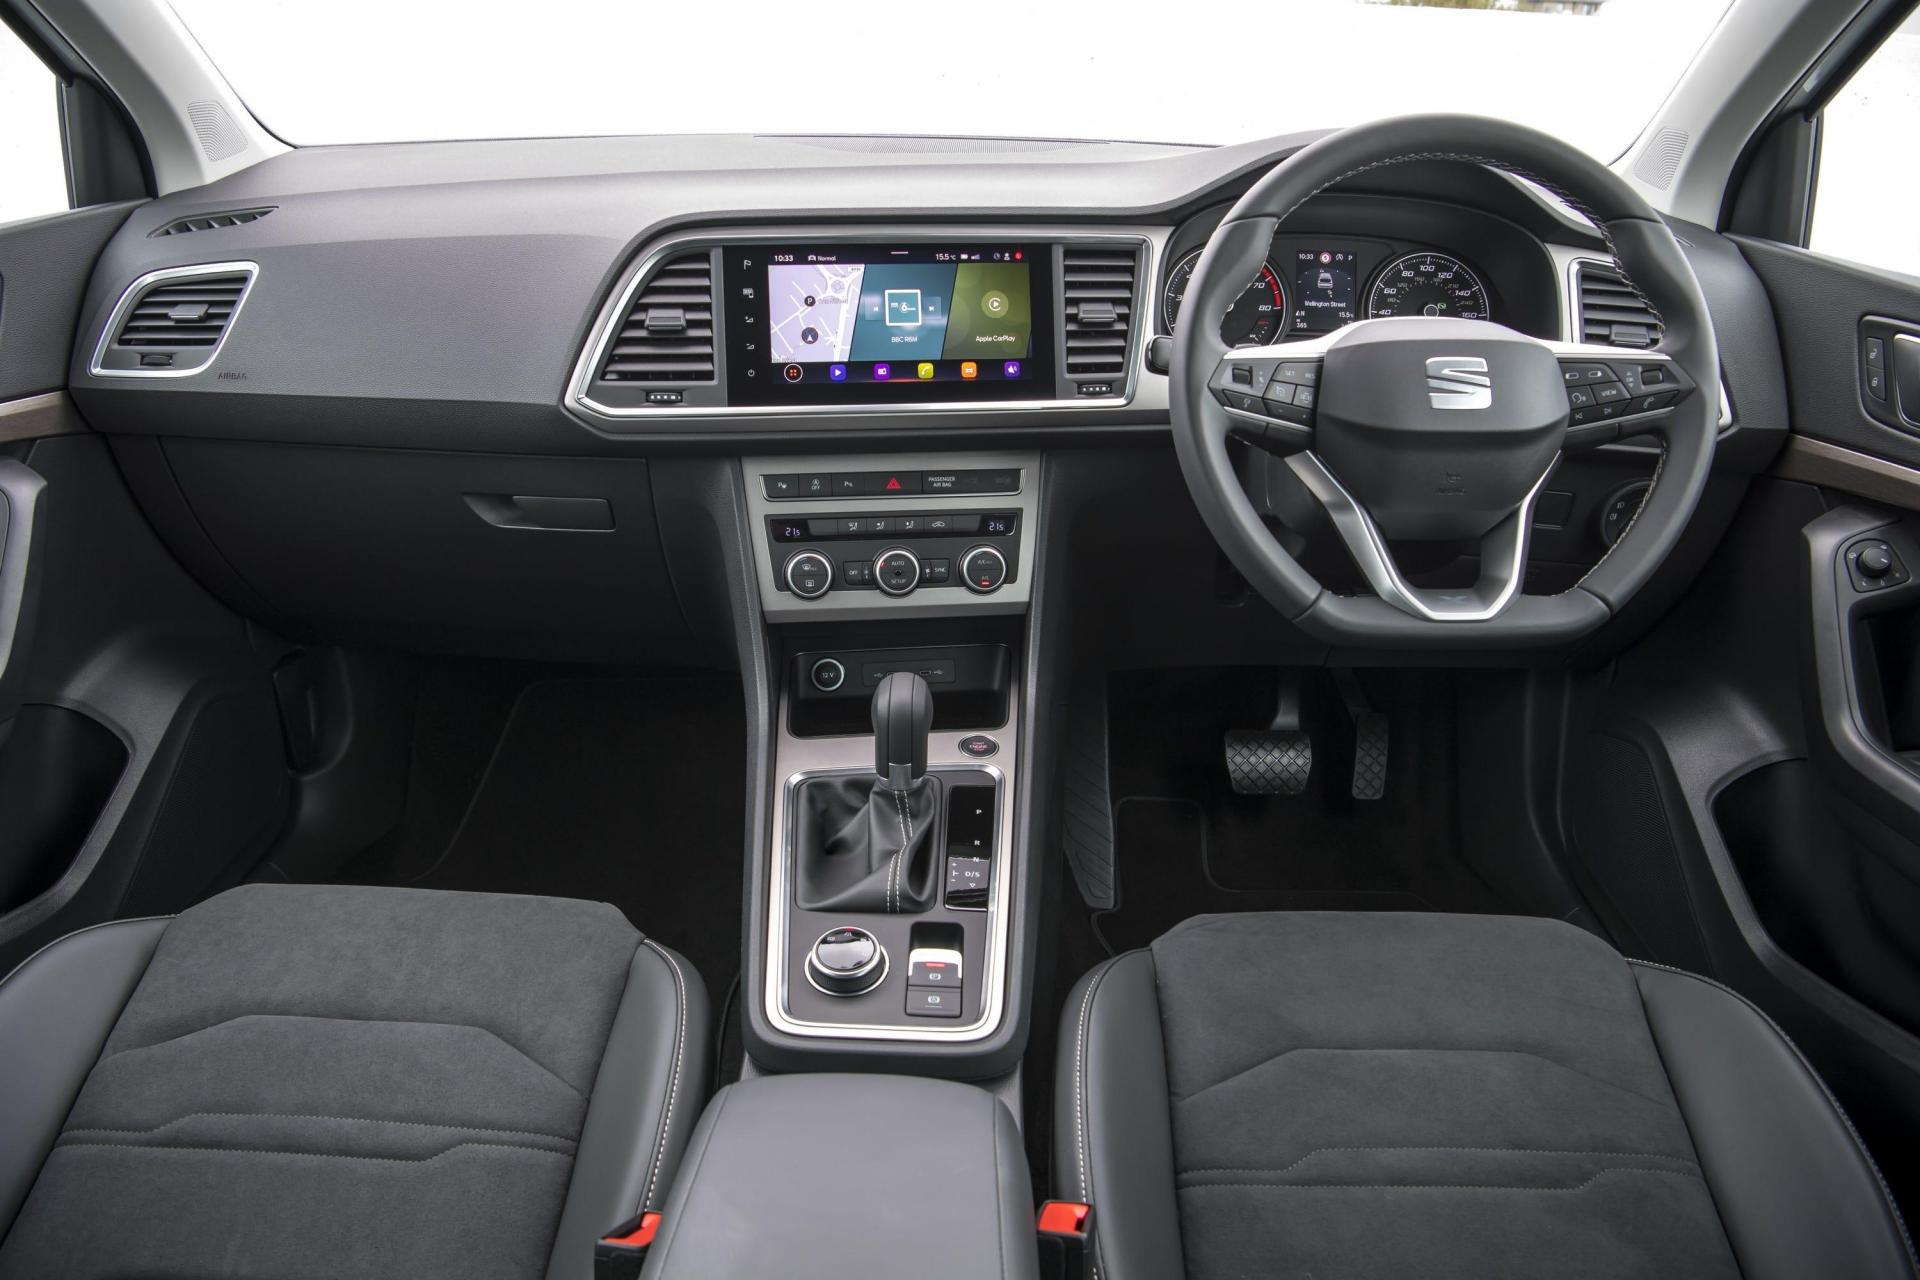 A large infotainment screen sits in the middle of the dash.